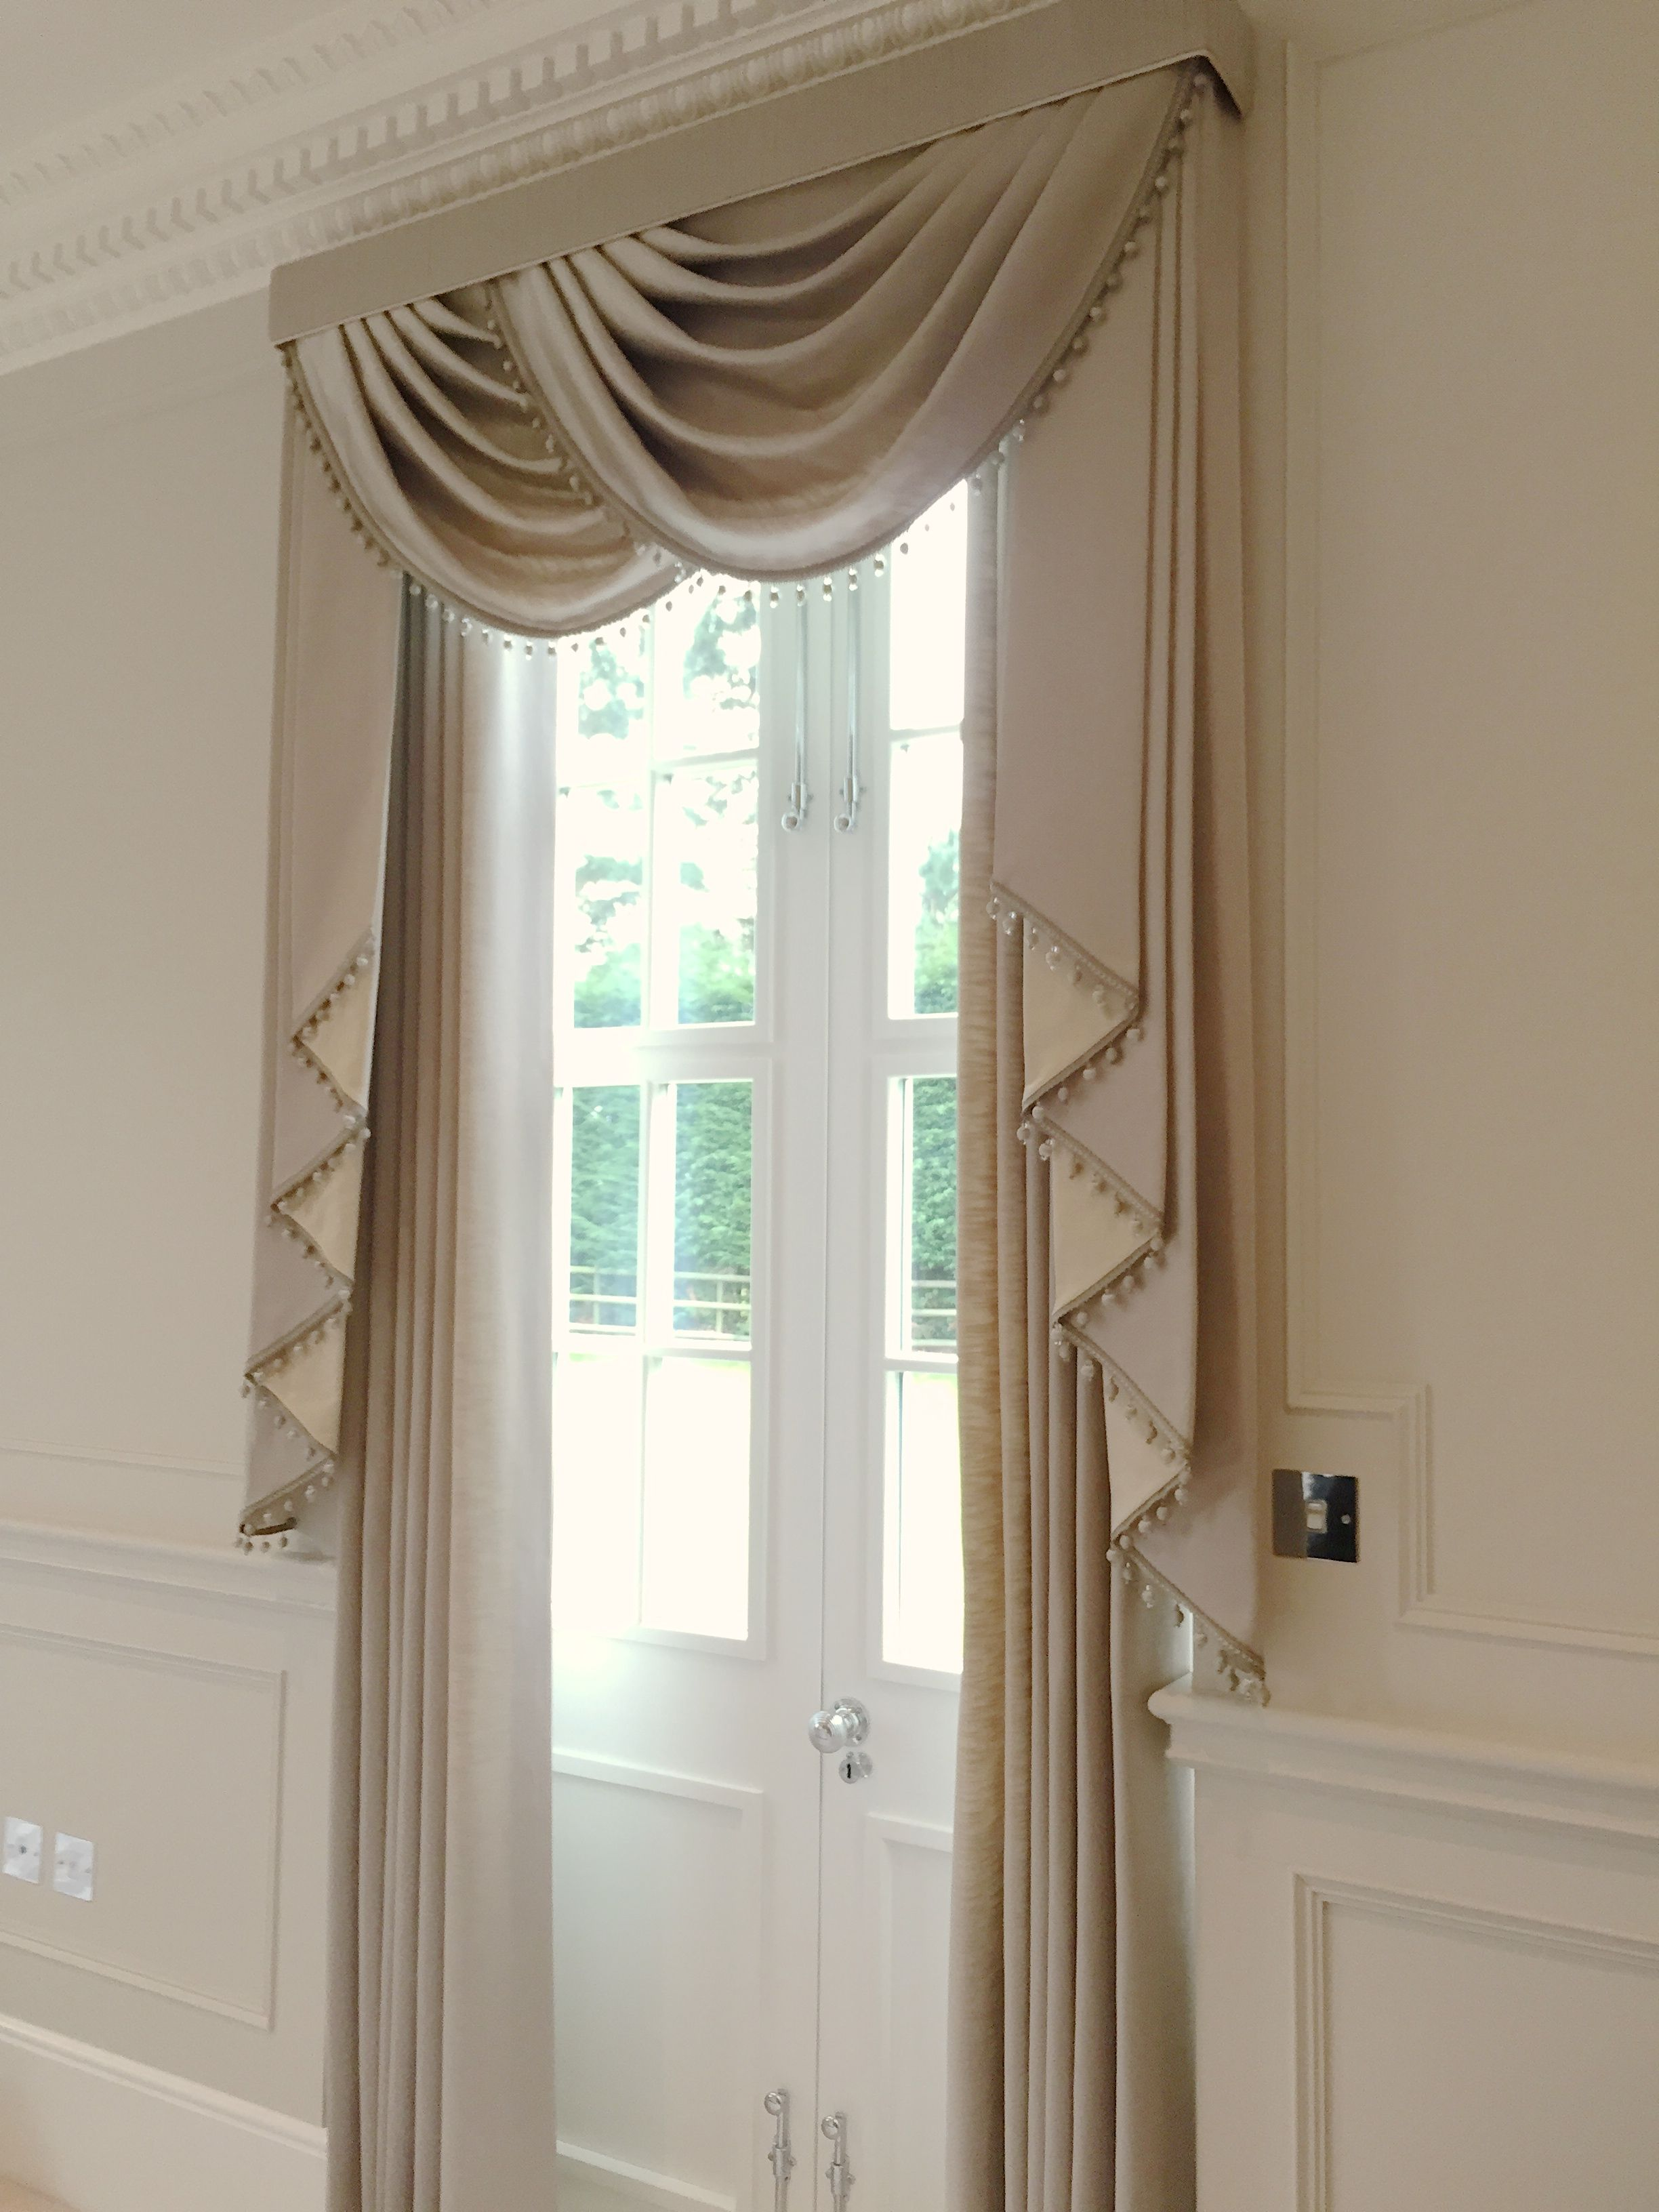 We created these stunning luxurious window treatments for Window design with curtains